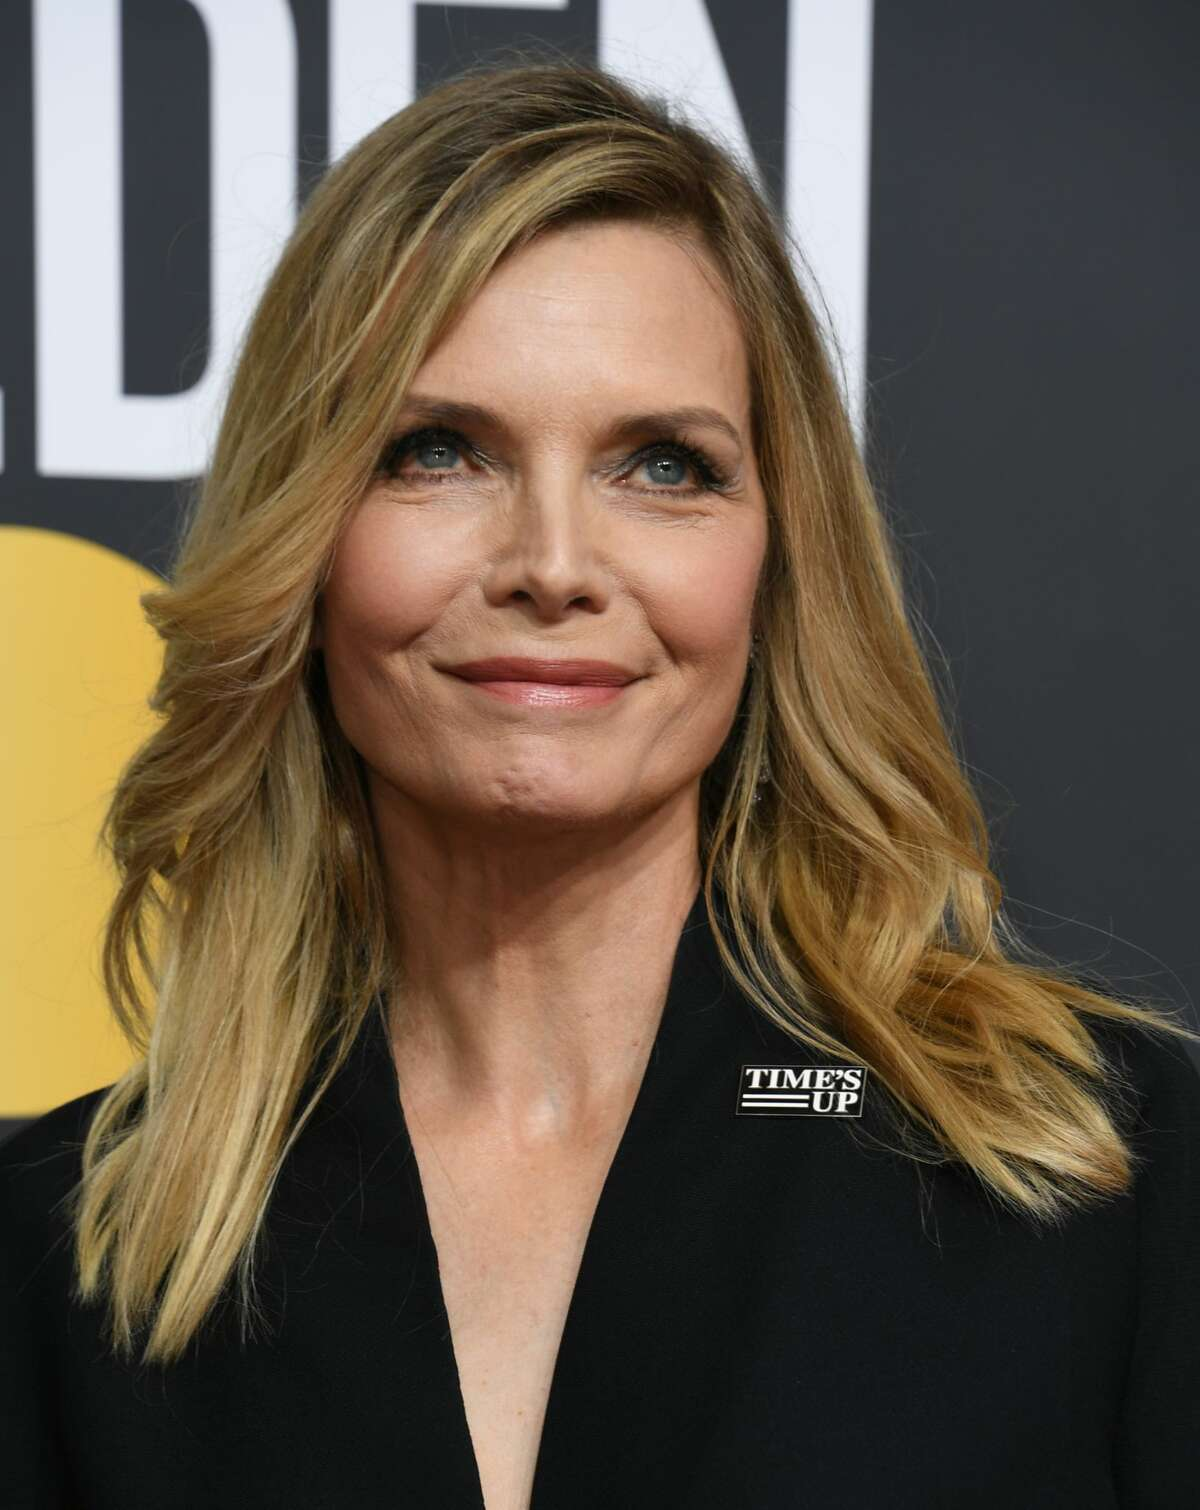 Name: Michelle Pfeiffer Born: April 29, 1958 (Photo credit should read VALERIE MACON/AFP/Getty Images)